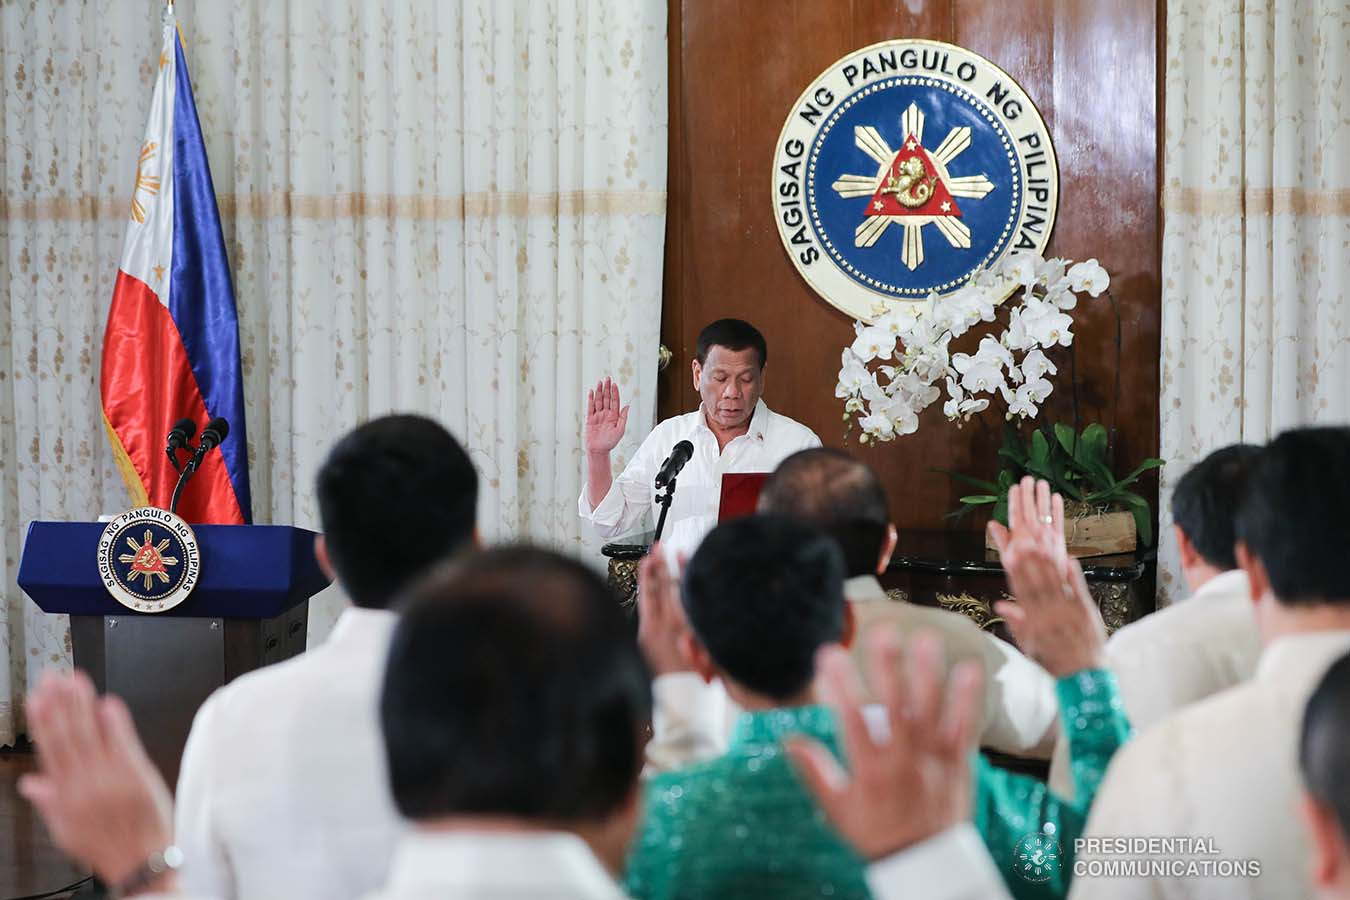 President Rodrigo Roa Duterte administers the oath to the officers of the League of Vice Governors of the Philippines during a ceremony at the Malacañan Palace on September 10, 2019. ALFRED FRIAS/PRESIDENTIAL PHOTO